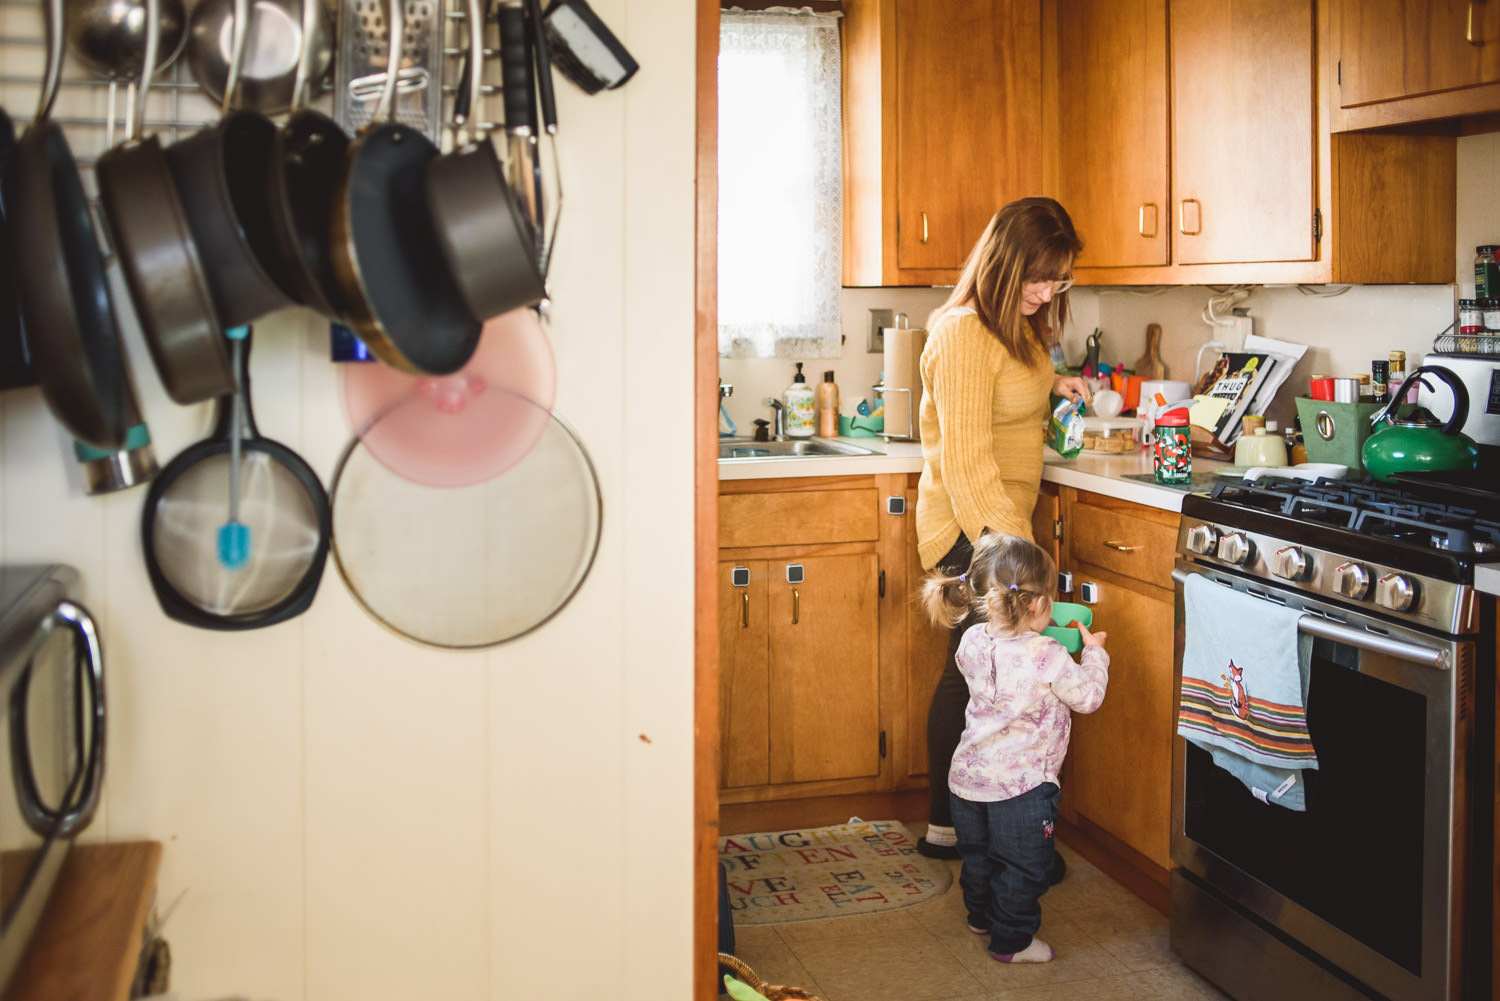 A mother gets her daughter a snack from the kitchen.